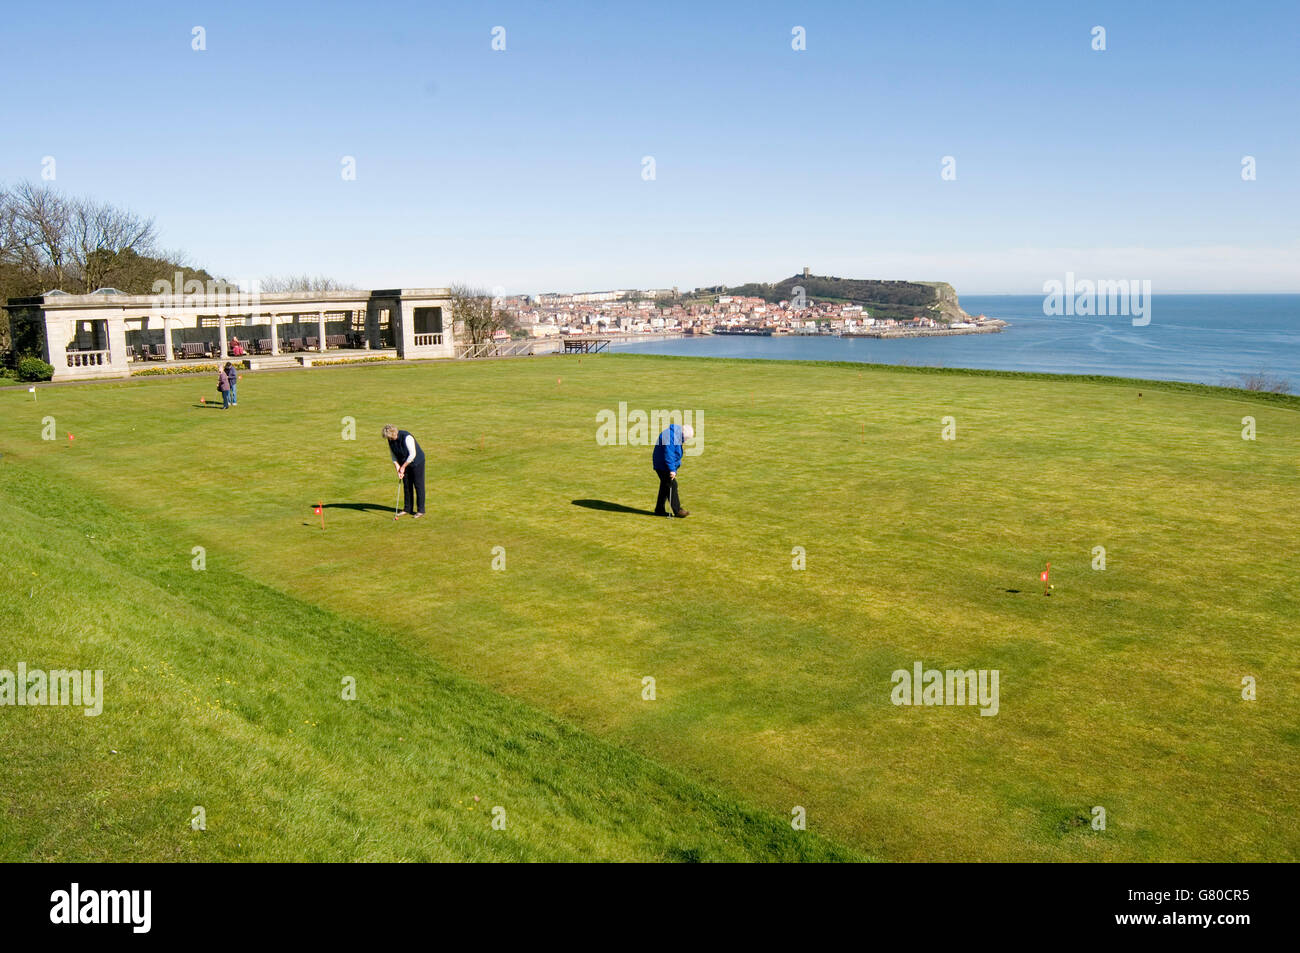 golf course courses putt putting green greens pitch and Scarborough bay north yorkshire sea north uk grass seaside - Stock Image